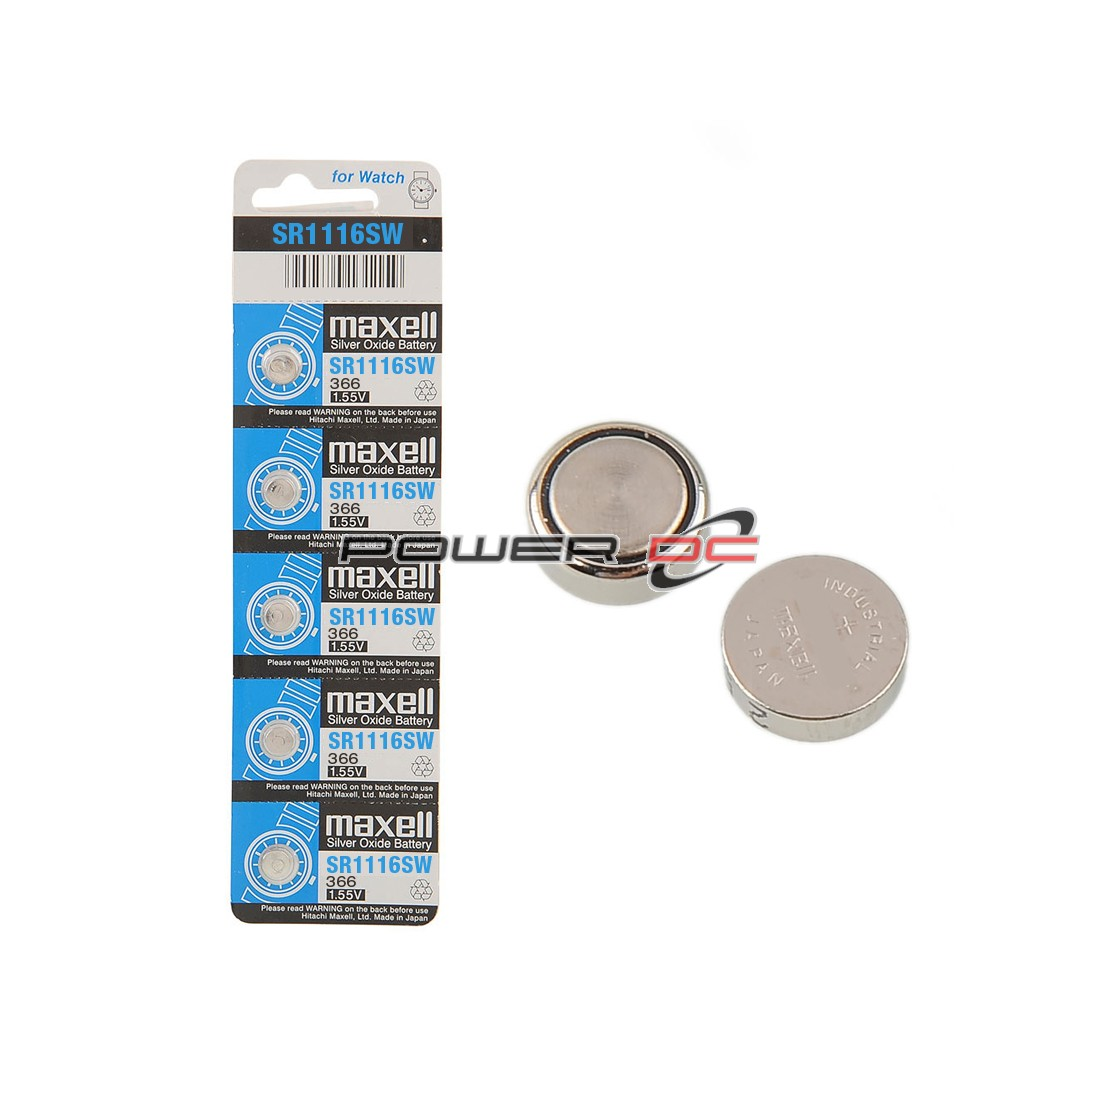 MAXELL SR1116SW S/OX BUTTON CELL P5